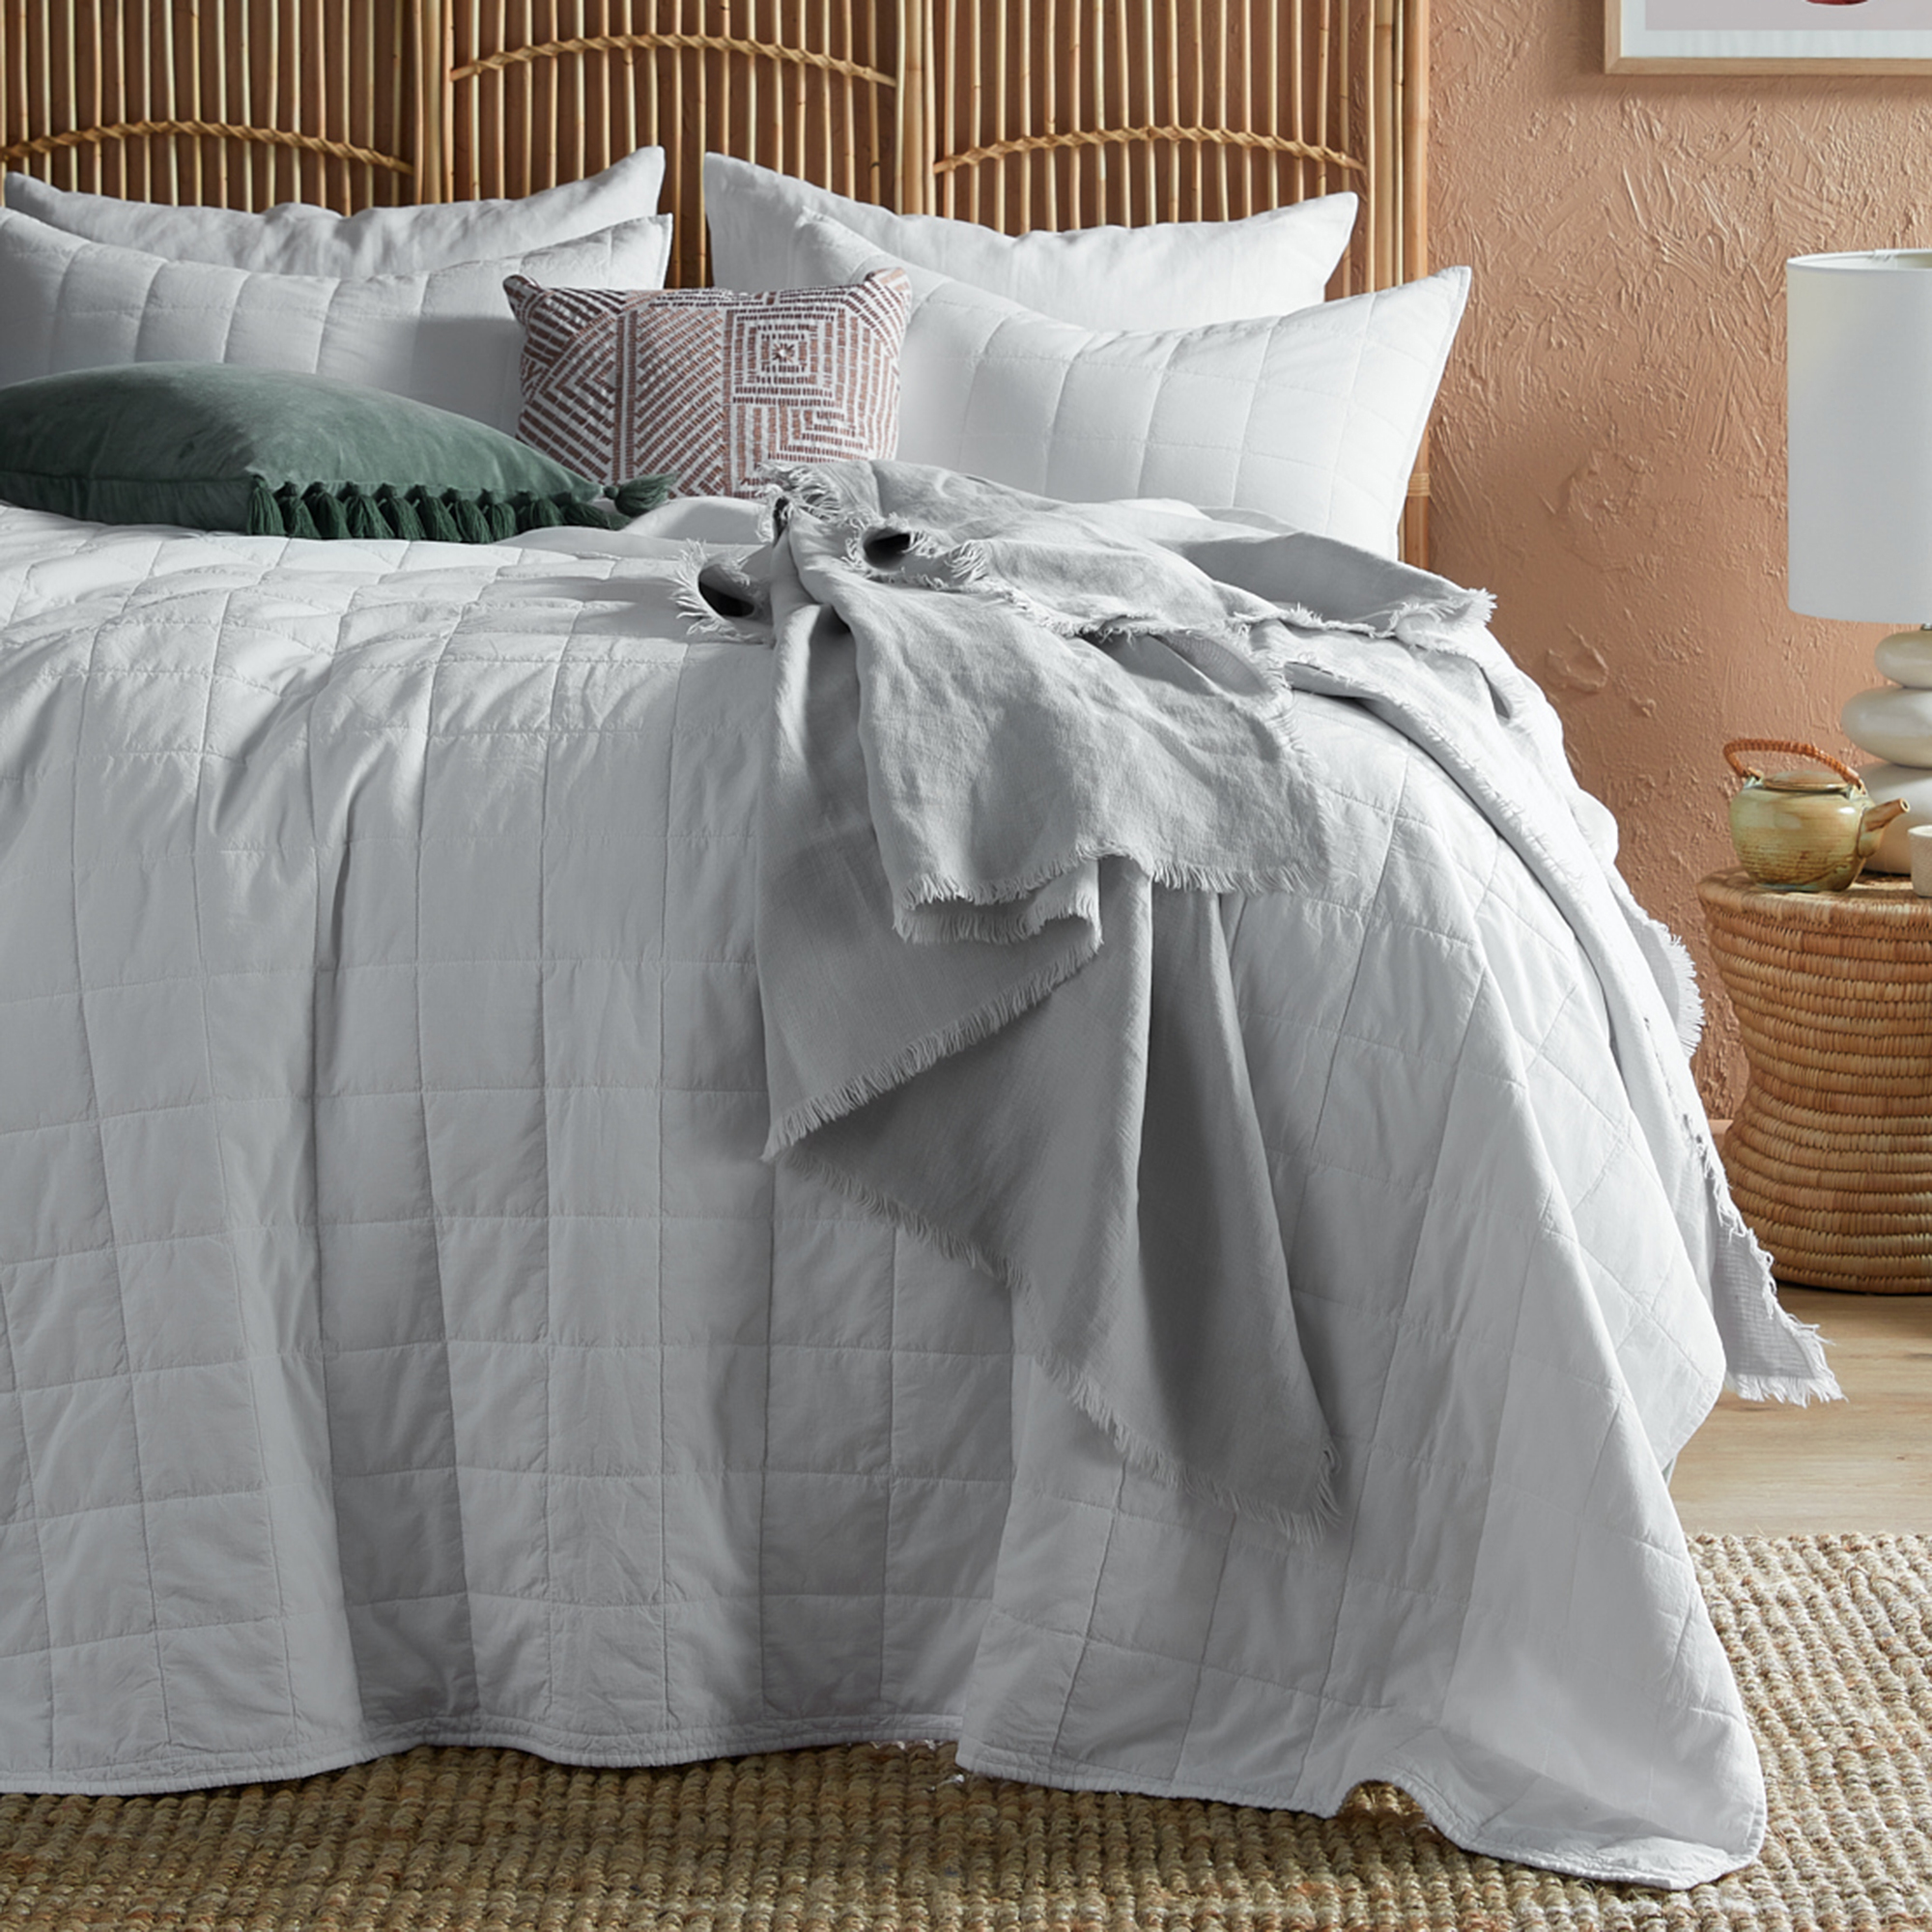 Temple Webster White Washed Cotton Coverlet Set